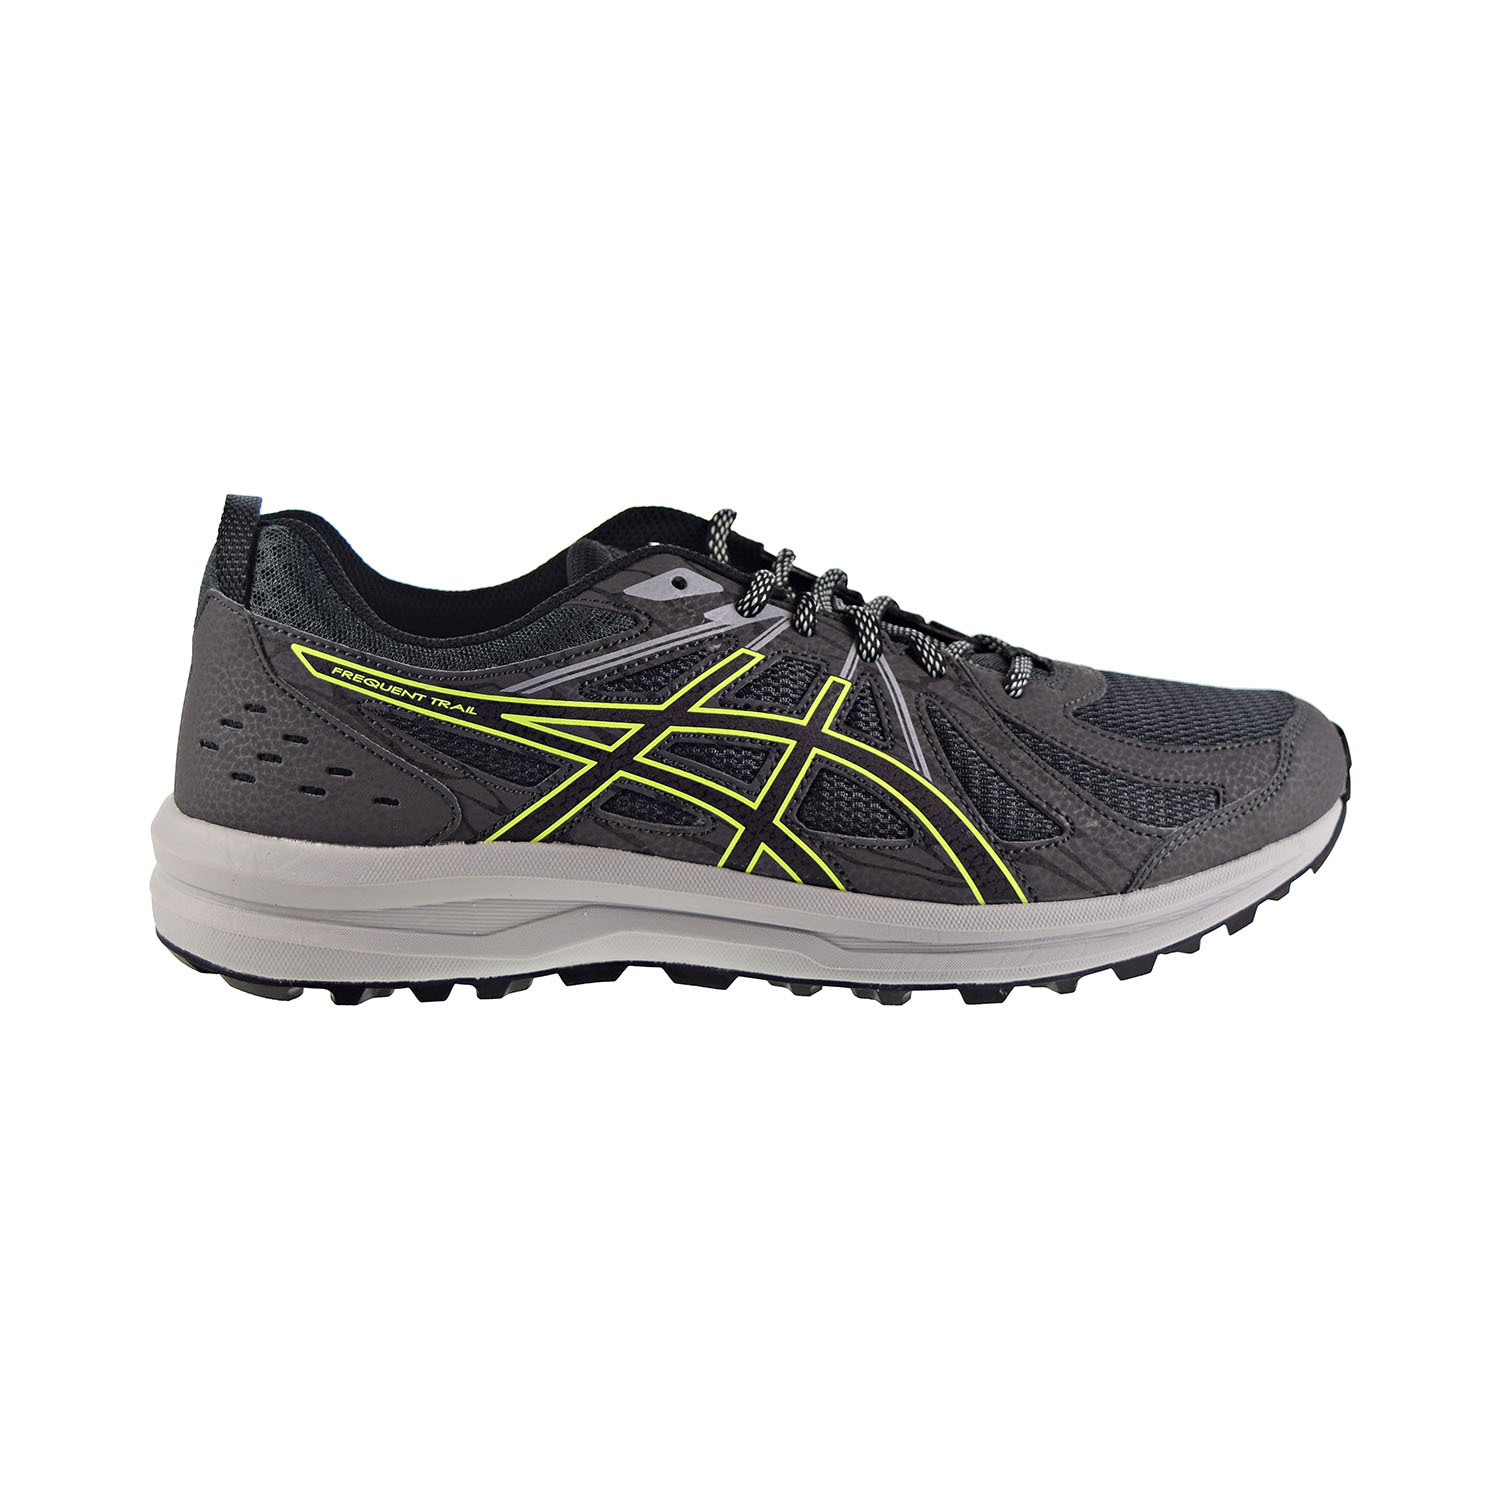 Asics Frequent Trail Men's Shoes Dark